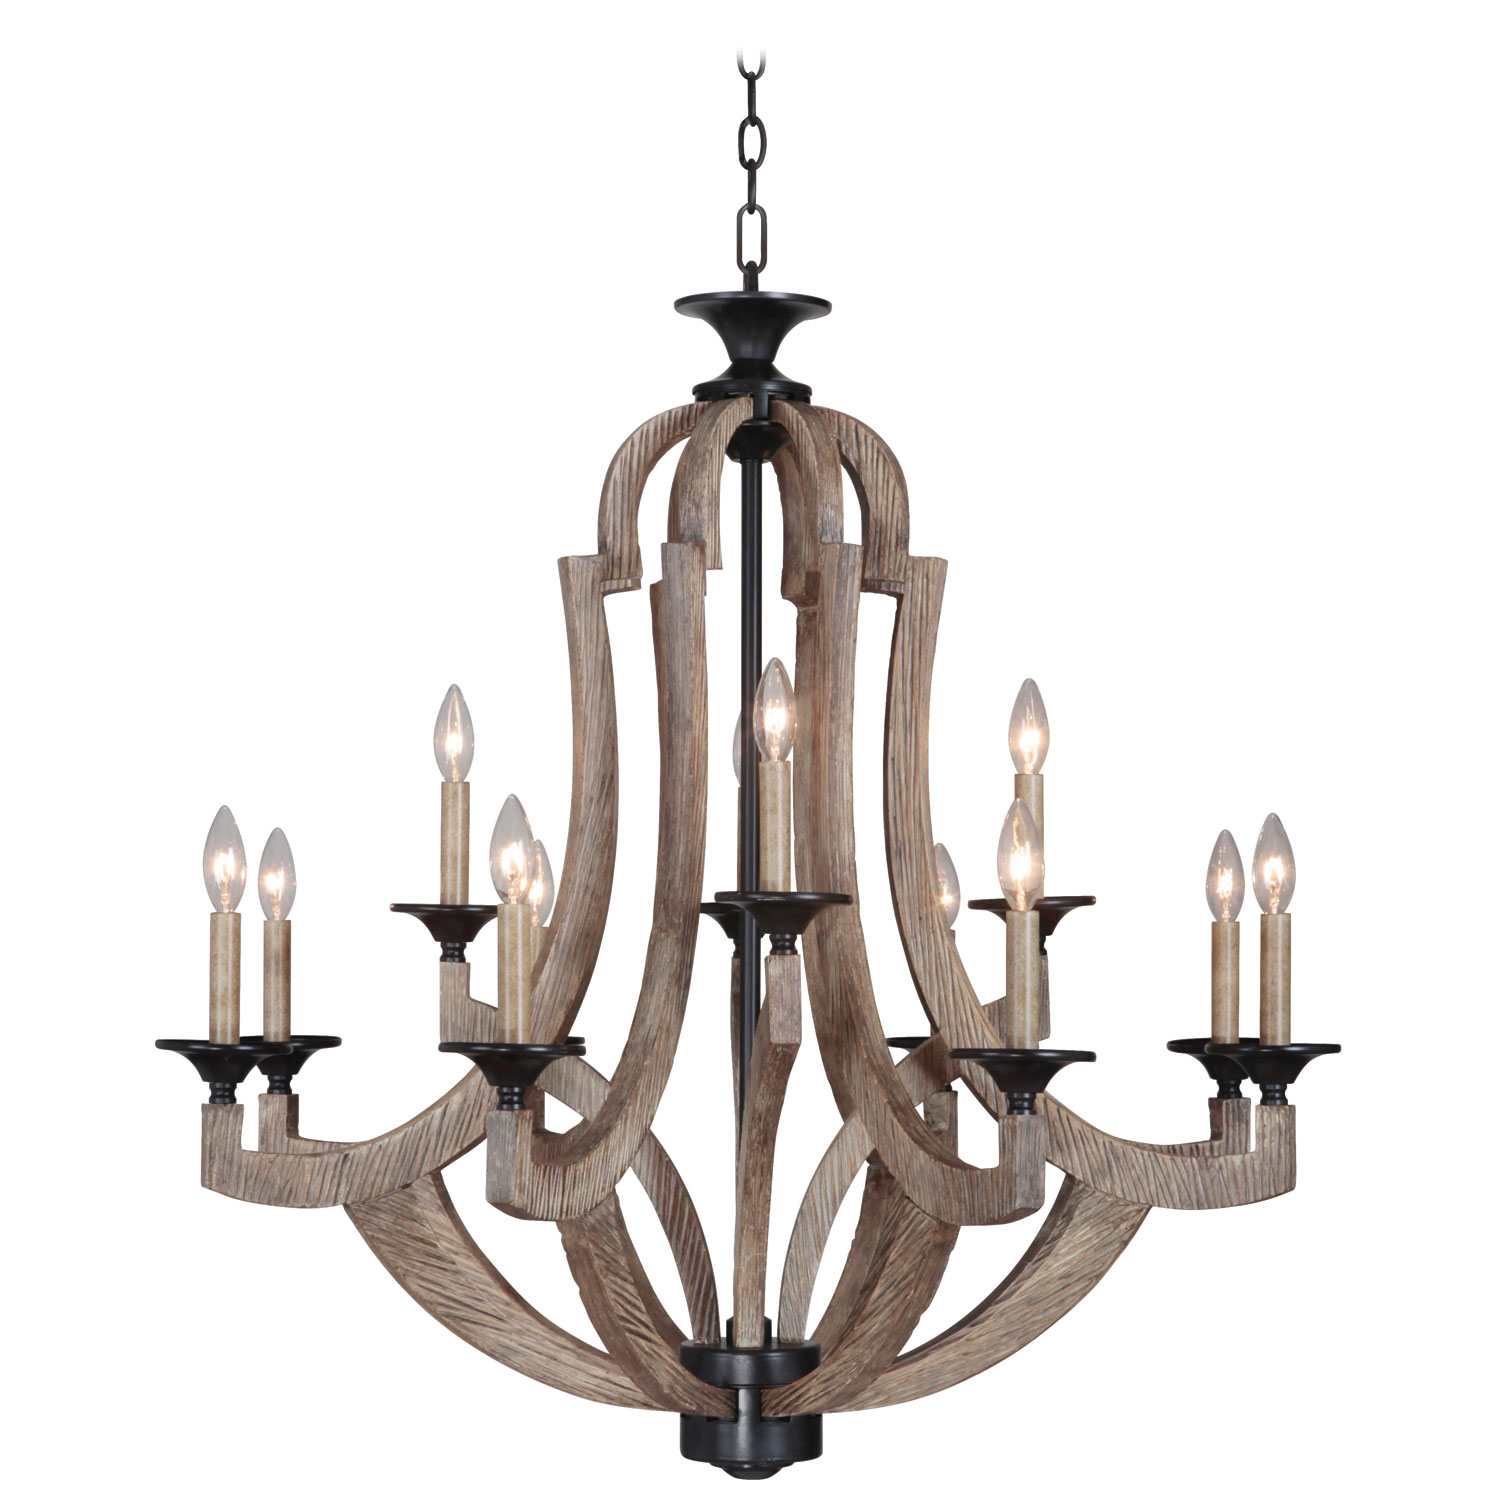 Chandeliers Crystal Modern Iron Shab Chic Country French Pertaining To Metal Chandeliers (Image 8 of 15)